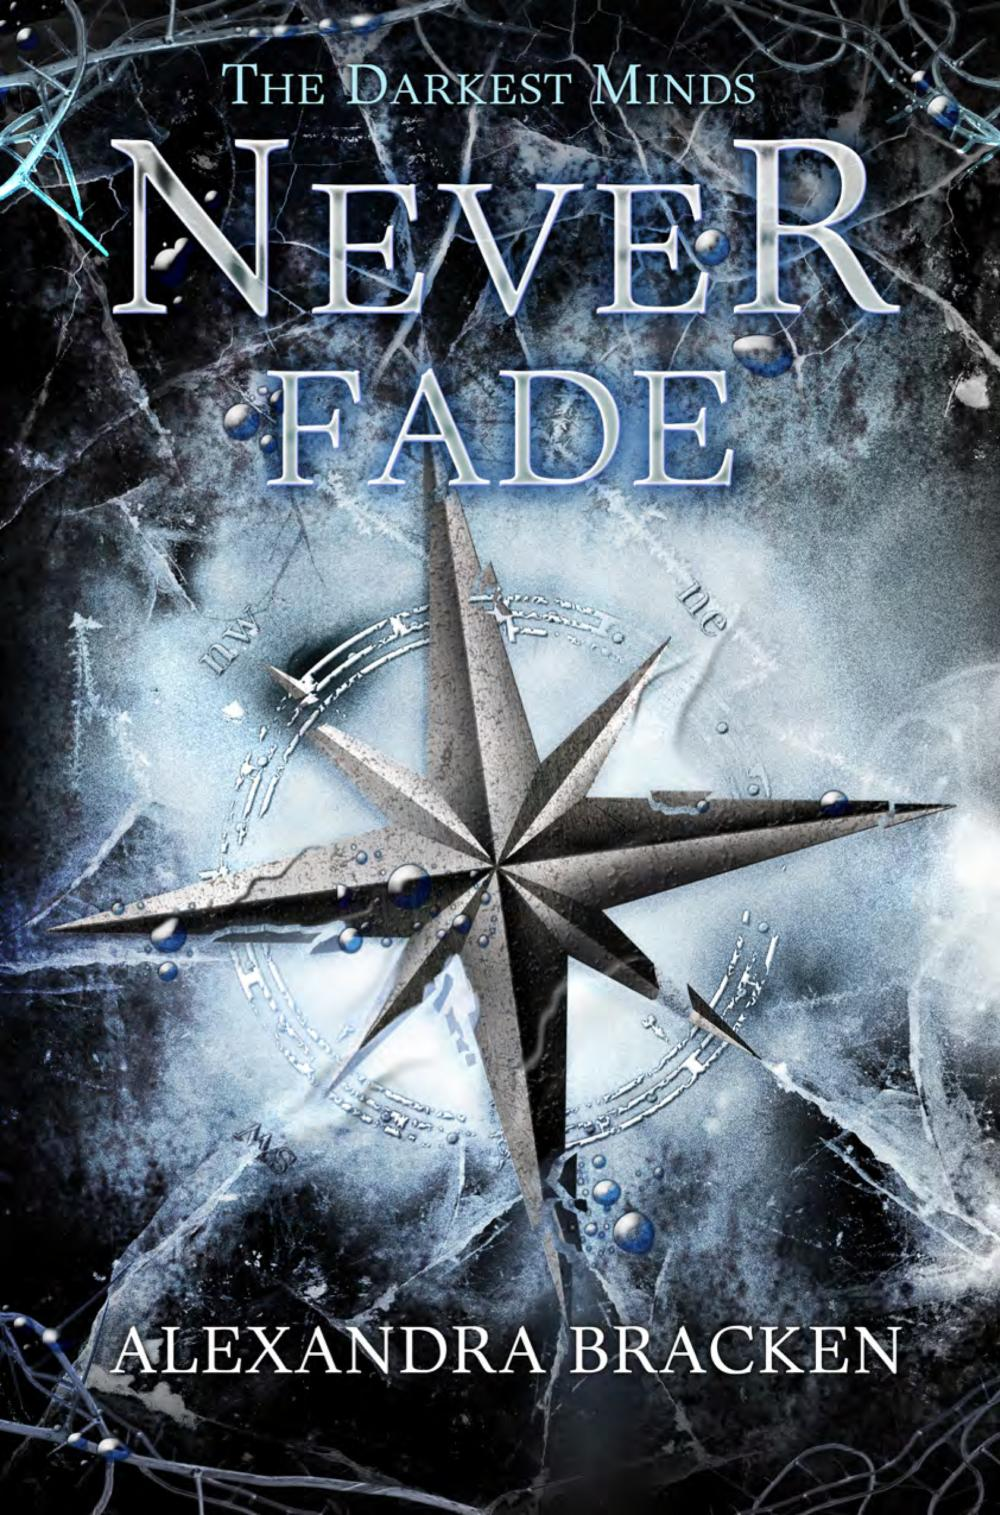 Never Fade by Alexandra Bracken (Darkest Minds #2, Audio) Amazon | Goodreads